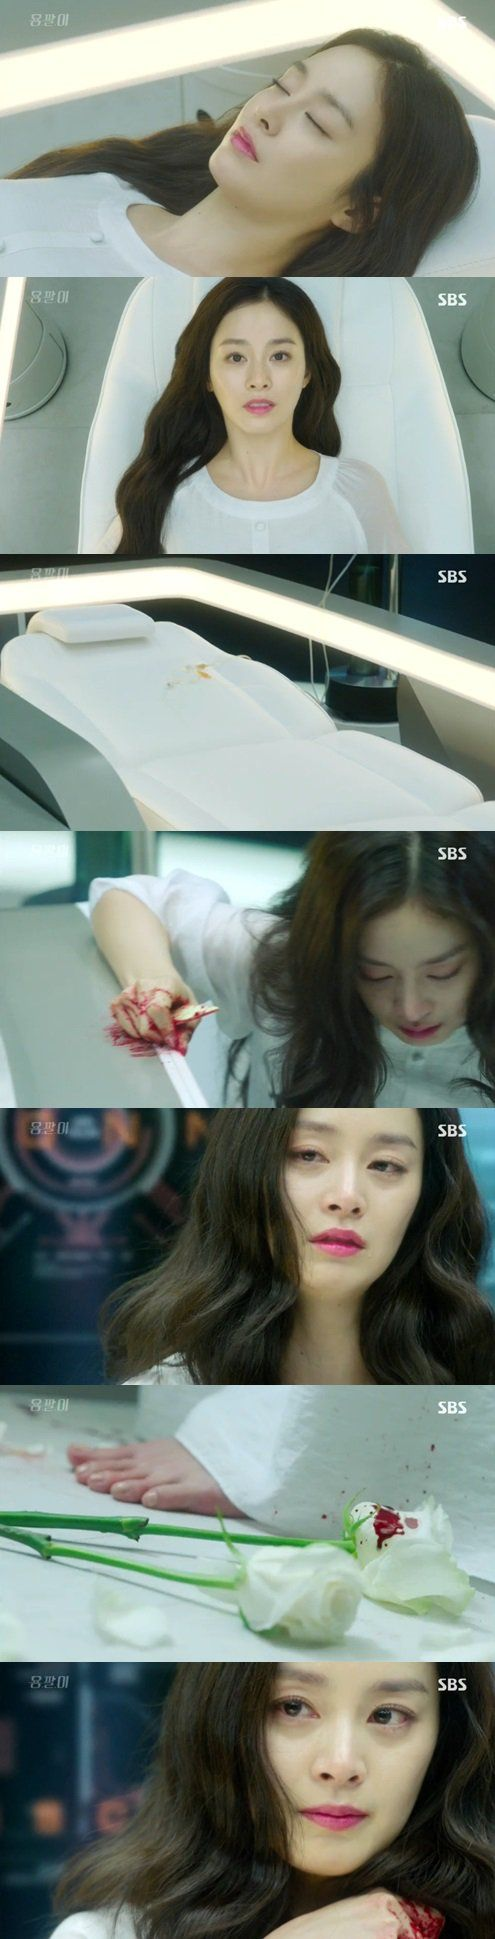 [Spoiler] 'Yong Pal' Kim Tae-hee wakes up and attempts suicide again @ HanCinema :: The Korean Movie and Drama Database